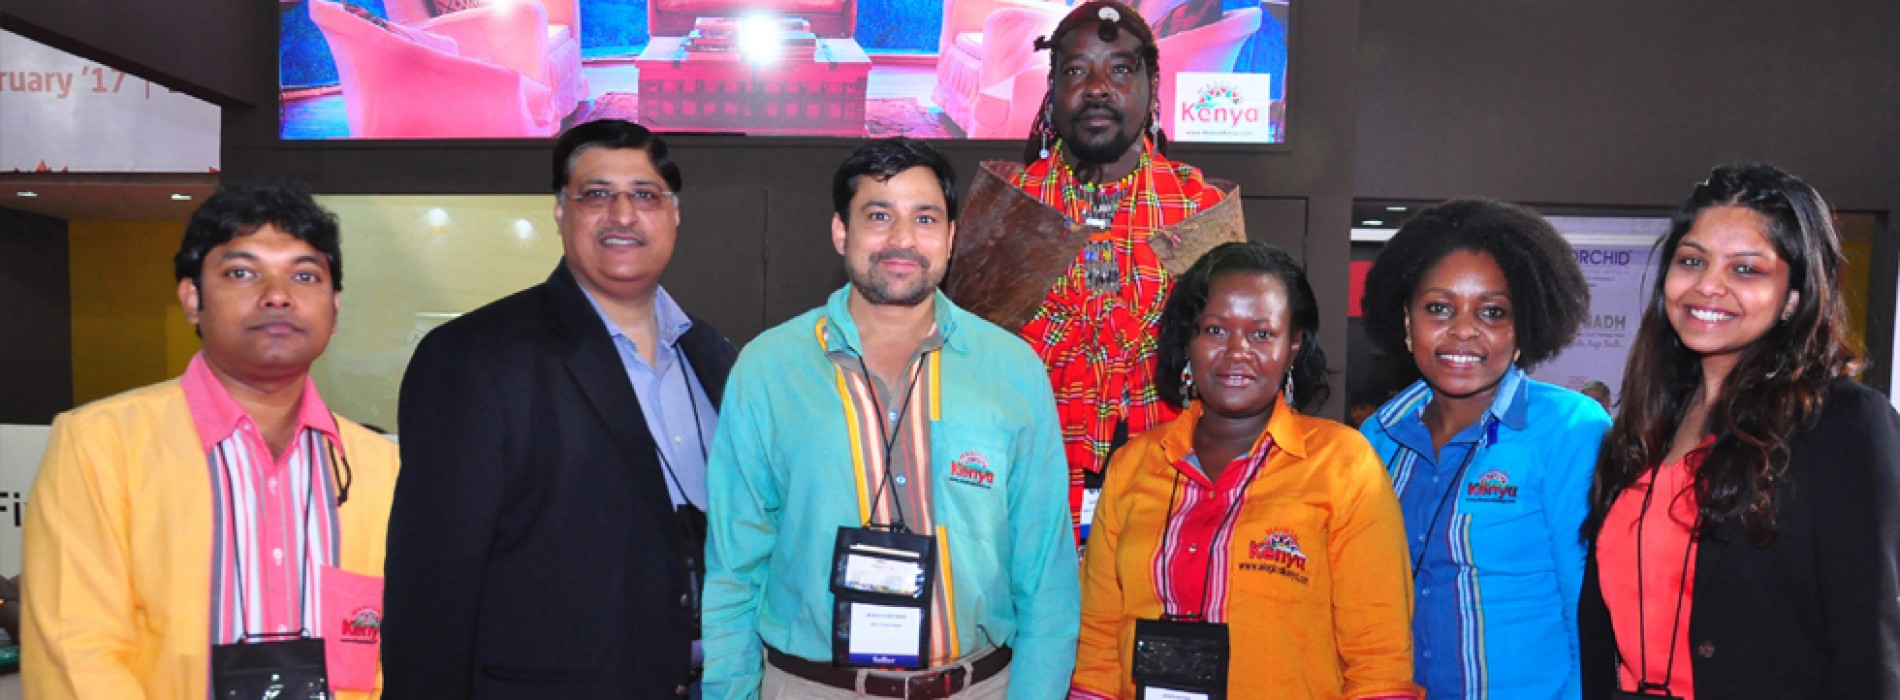 Kenya Tourism Board participates at India's leading Outbound Travel Mart 2017